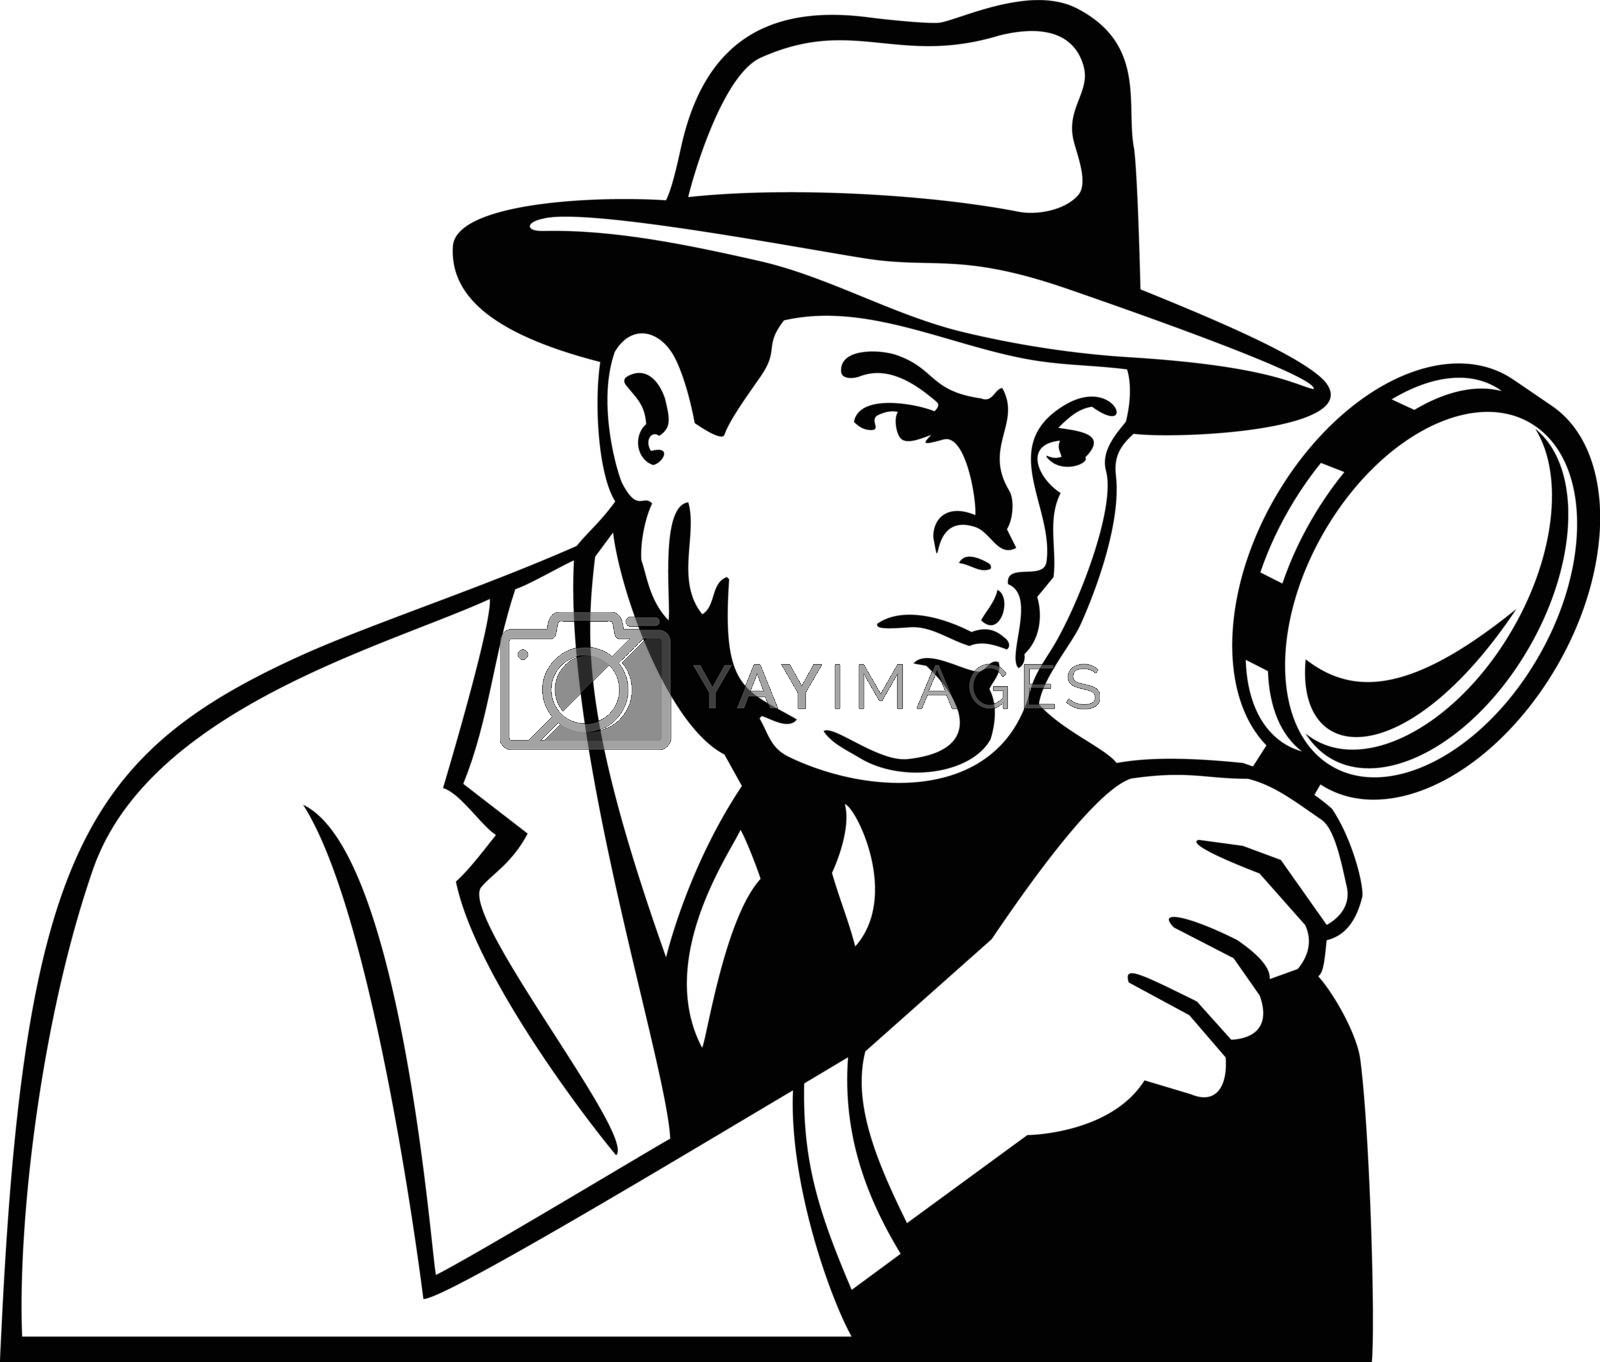 Stencil illustration of a detective, inspector, private eye or investigator looking through magnifying glass wearing fedora hat viewed from side on isolated background in black and white retro style.